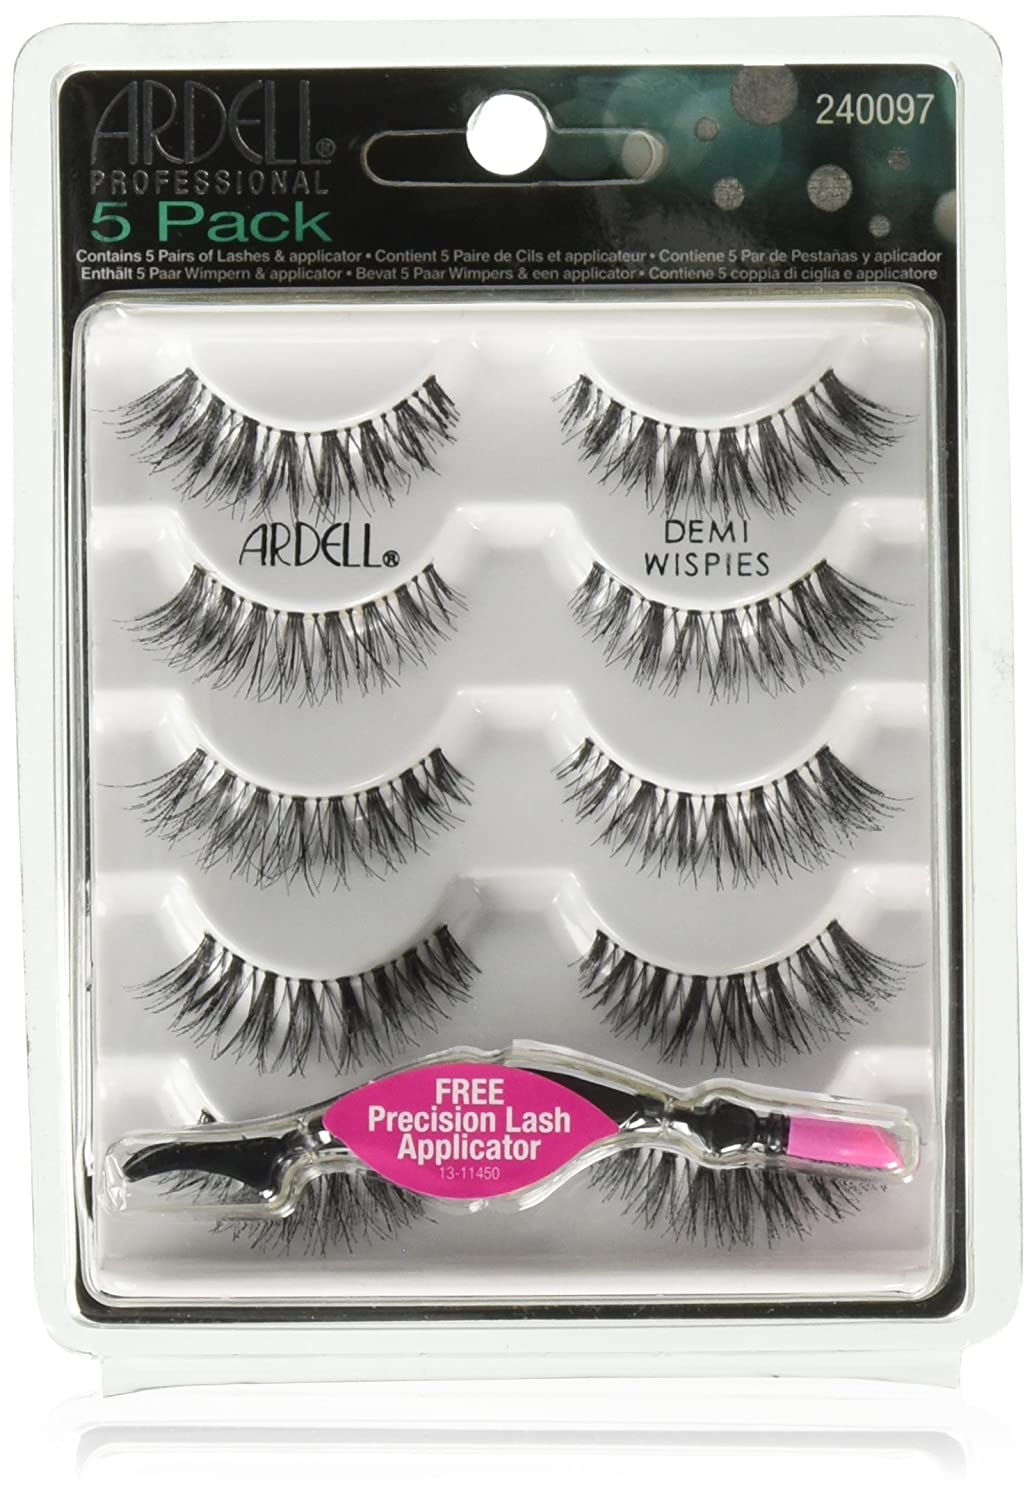 Ardell professional 5 Pack Demi Wispies With Free Precision lash Applicator 68980